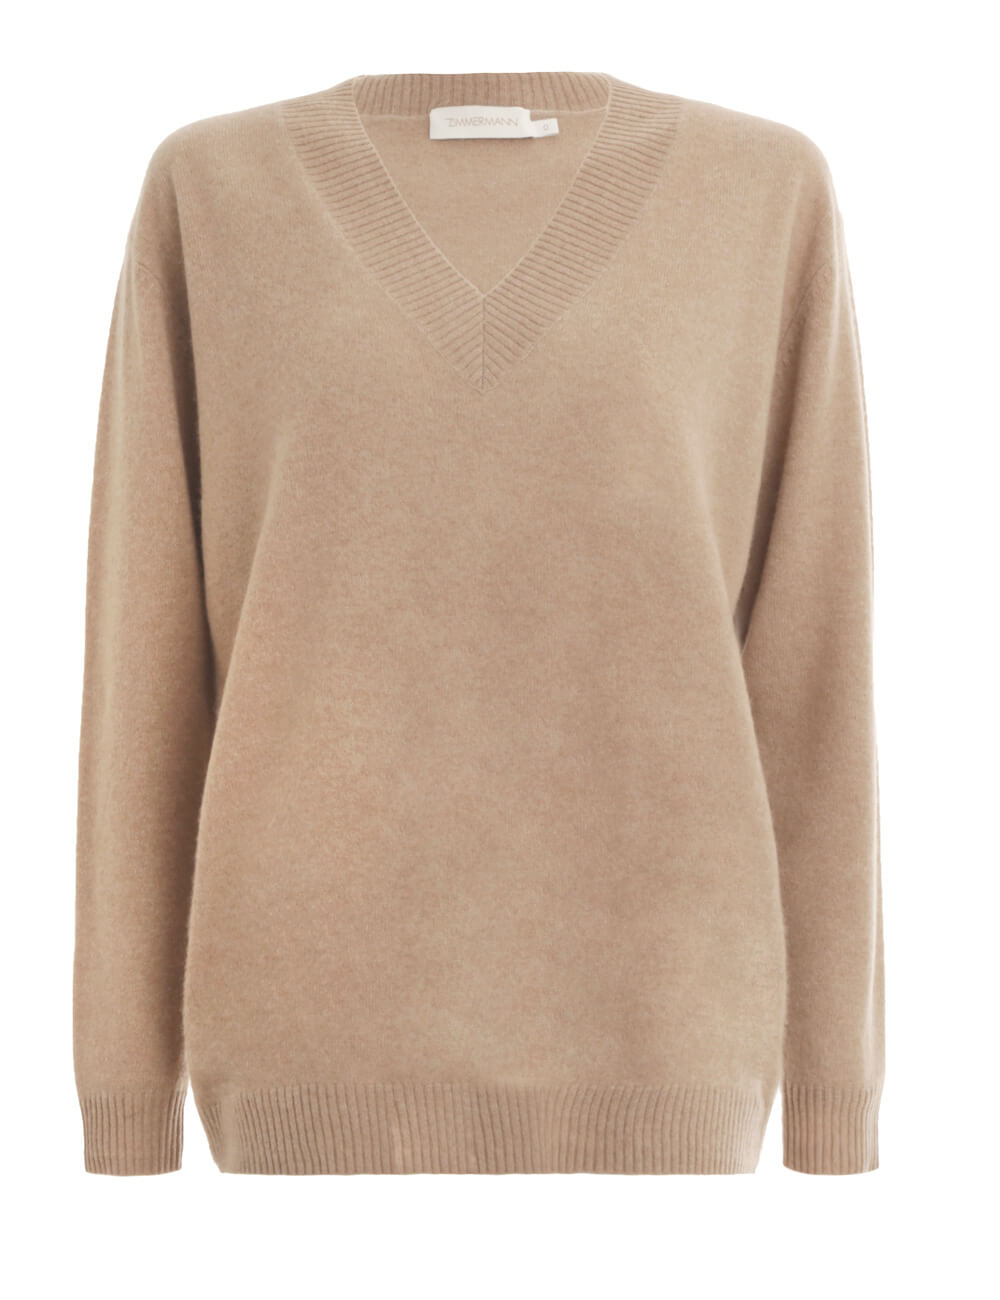 Espionage Cashmere V Neck